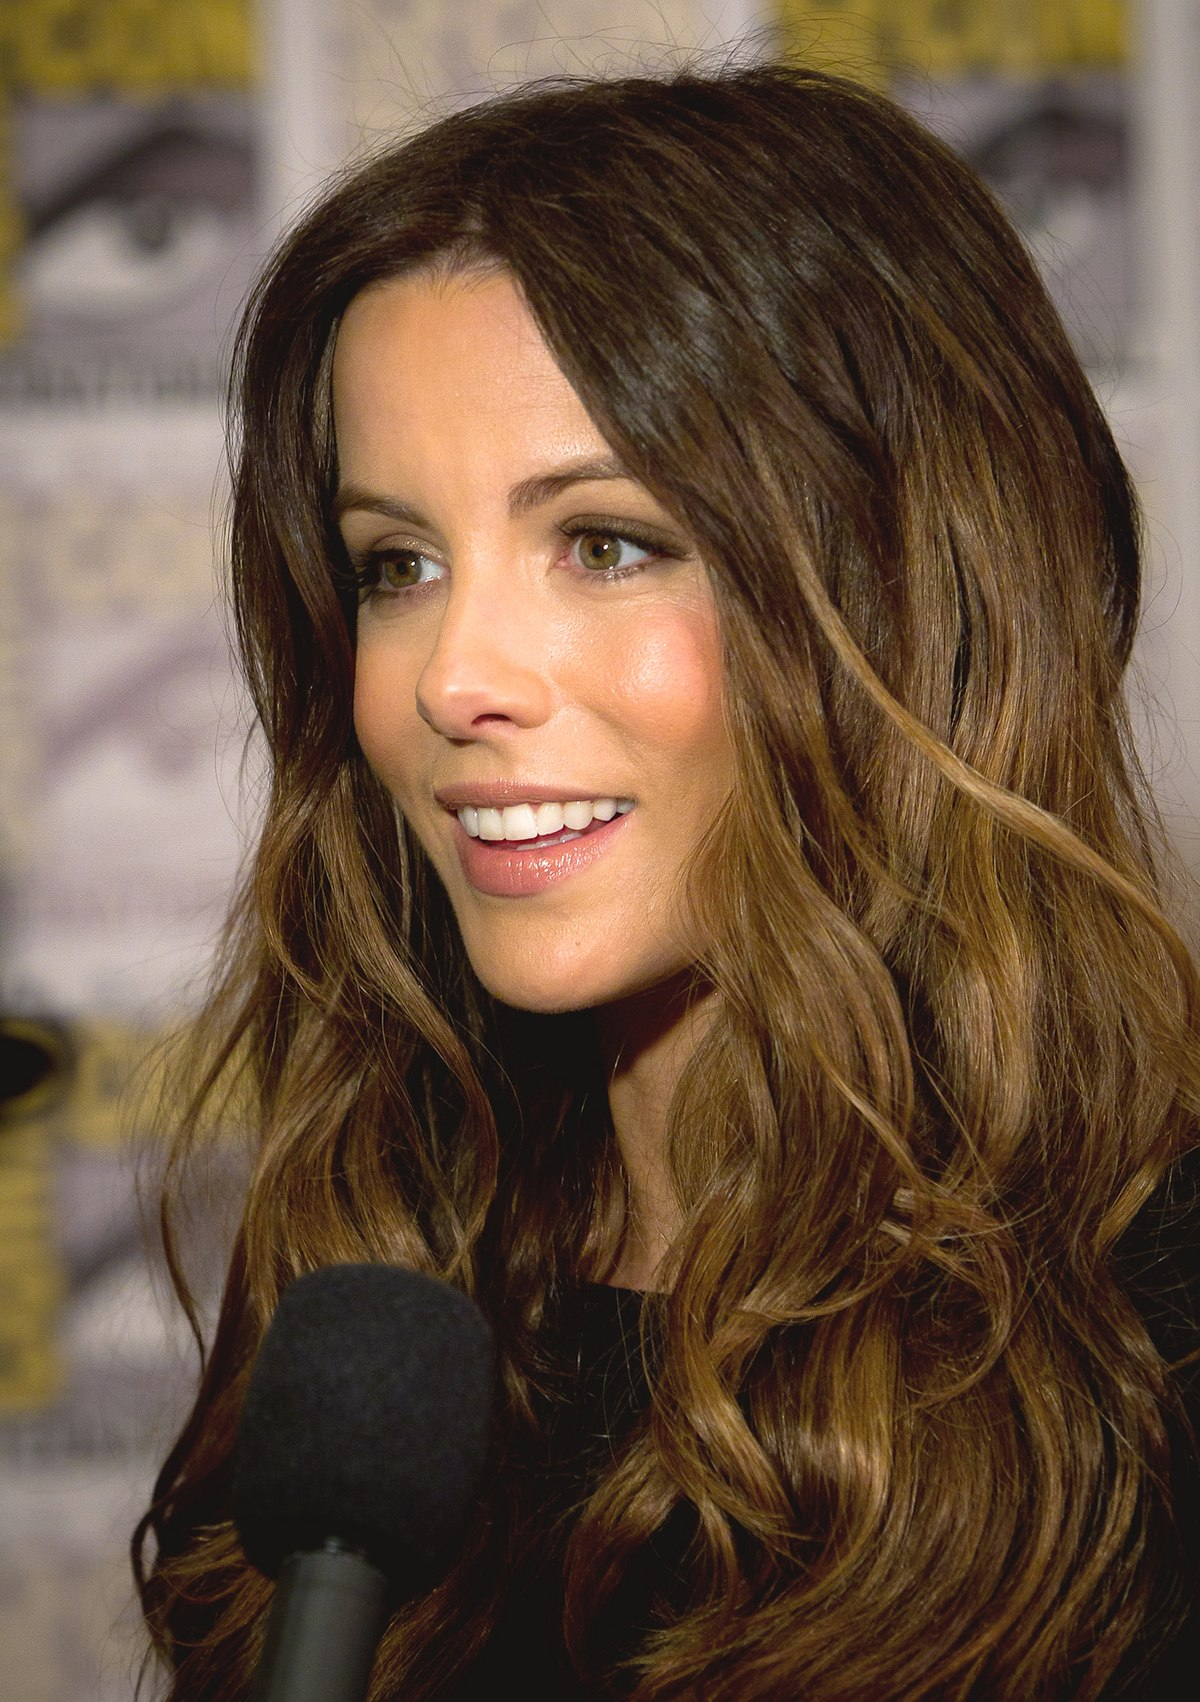 Bryan Singer Productions >> Kate Beckinsale - Wikipedia